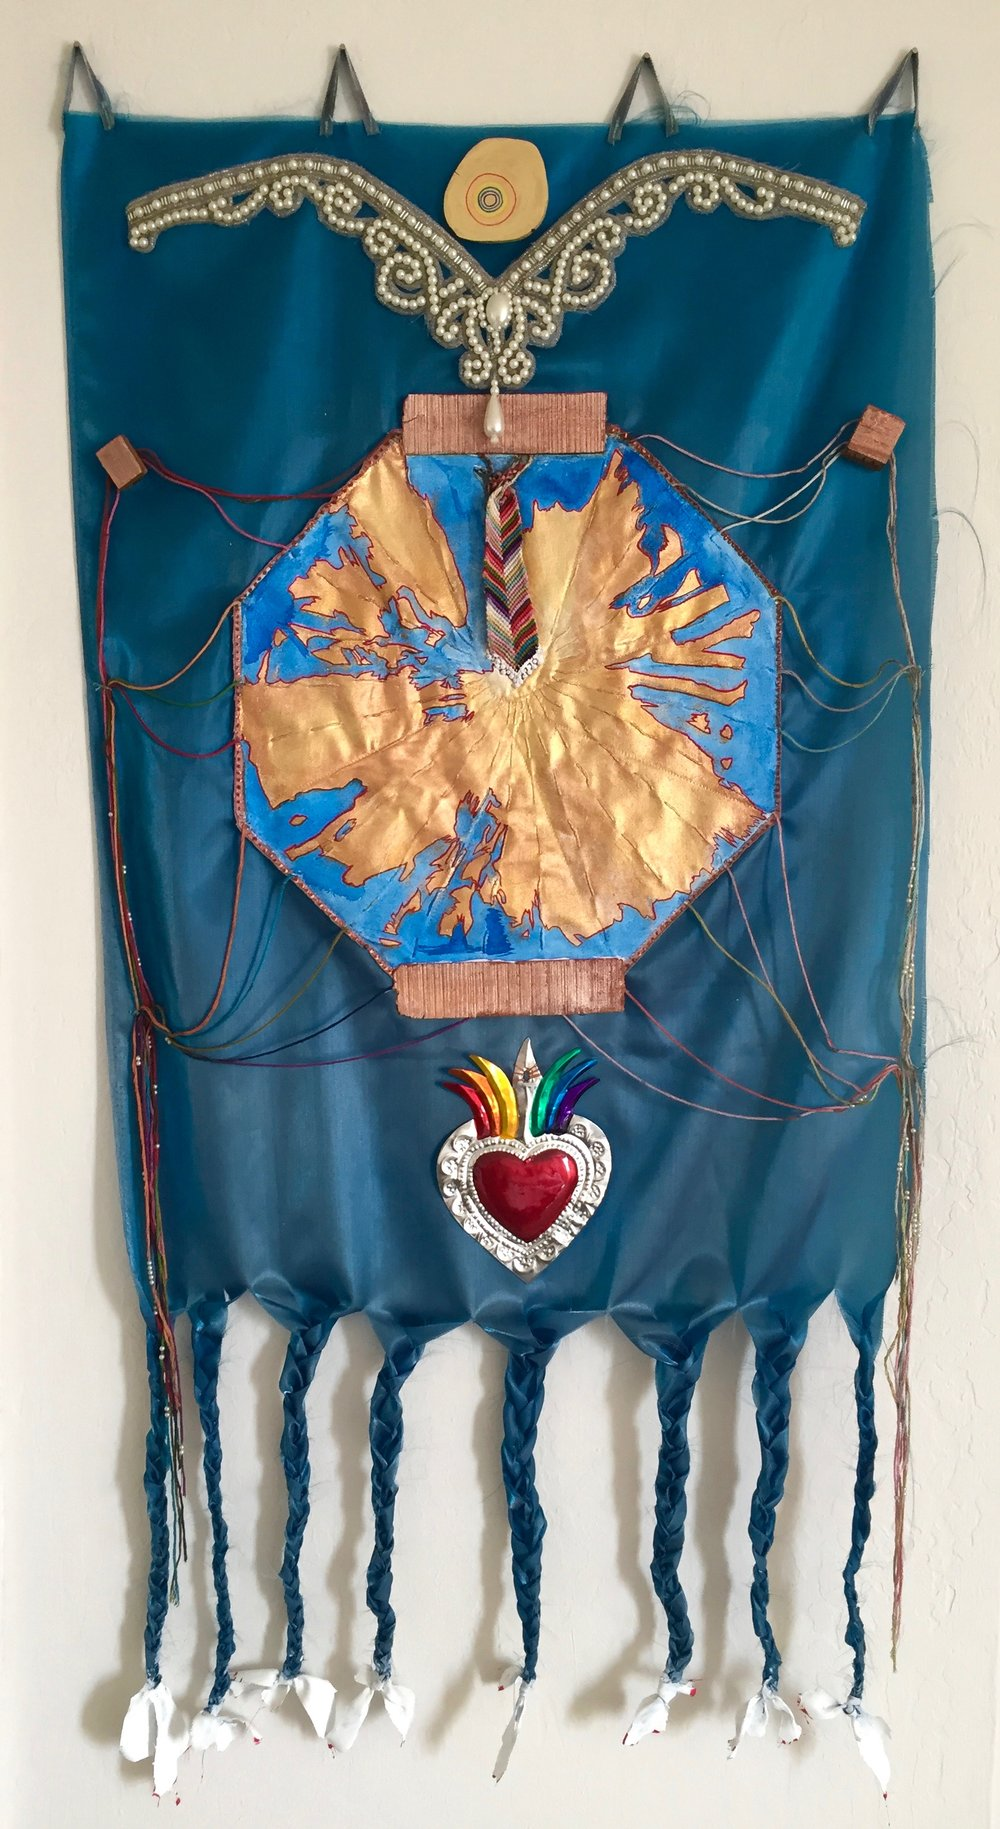 Banner , fabric, velvet, pearl appliqué, pearl beads,wood, found metal heart, embroidery floss, paint, 17 1/2 x 36 inches